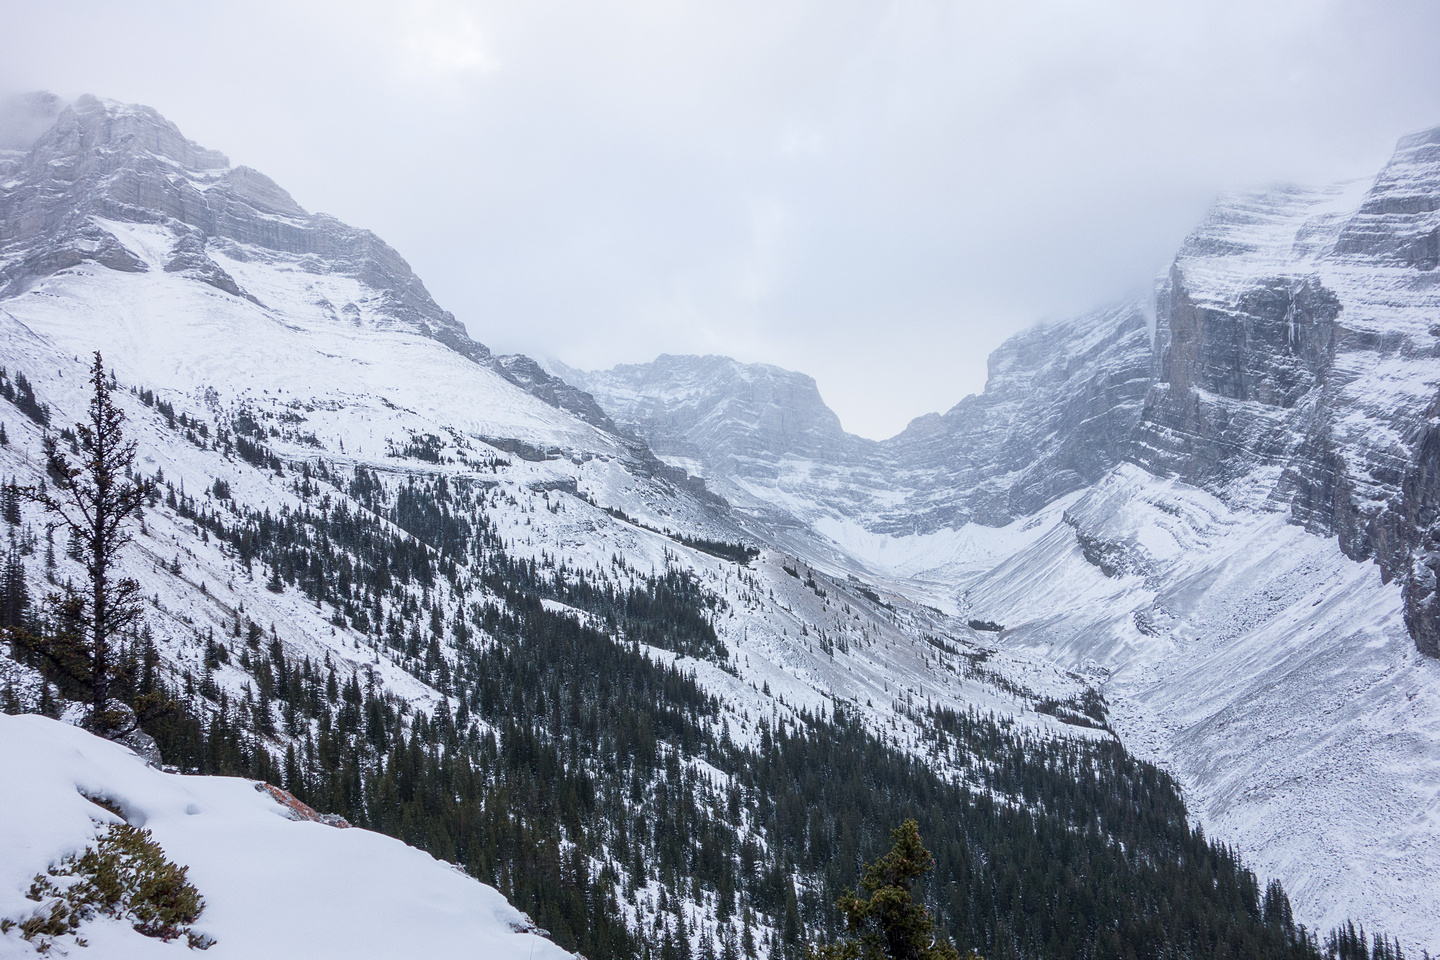 A view into the pristine Spencer Creek Valley which grants access to both Lougheed II and III.